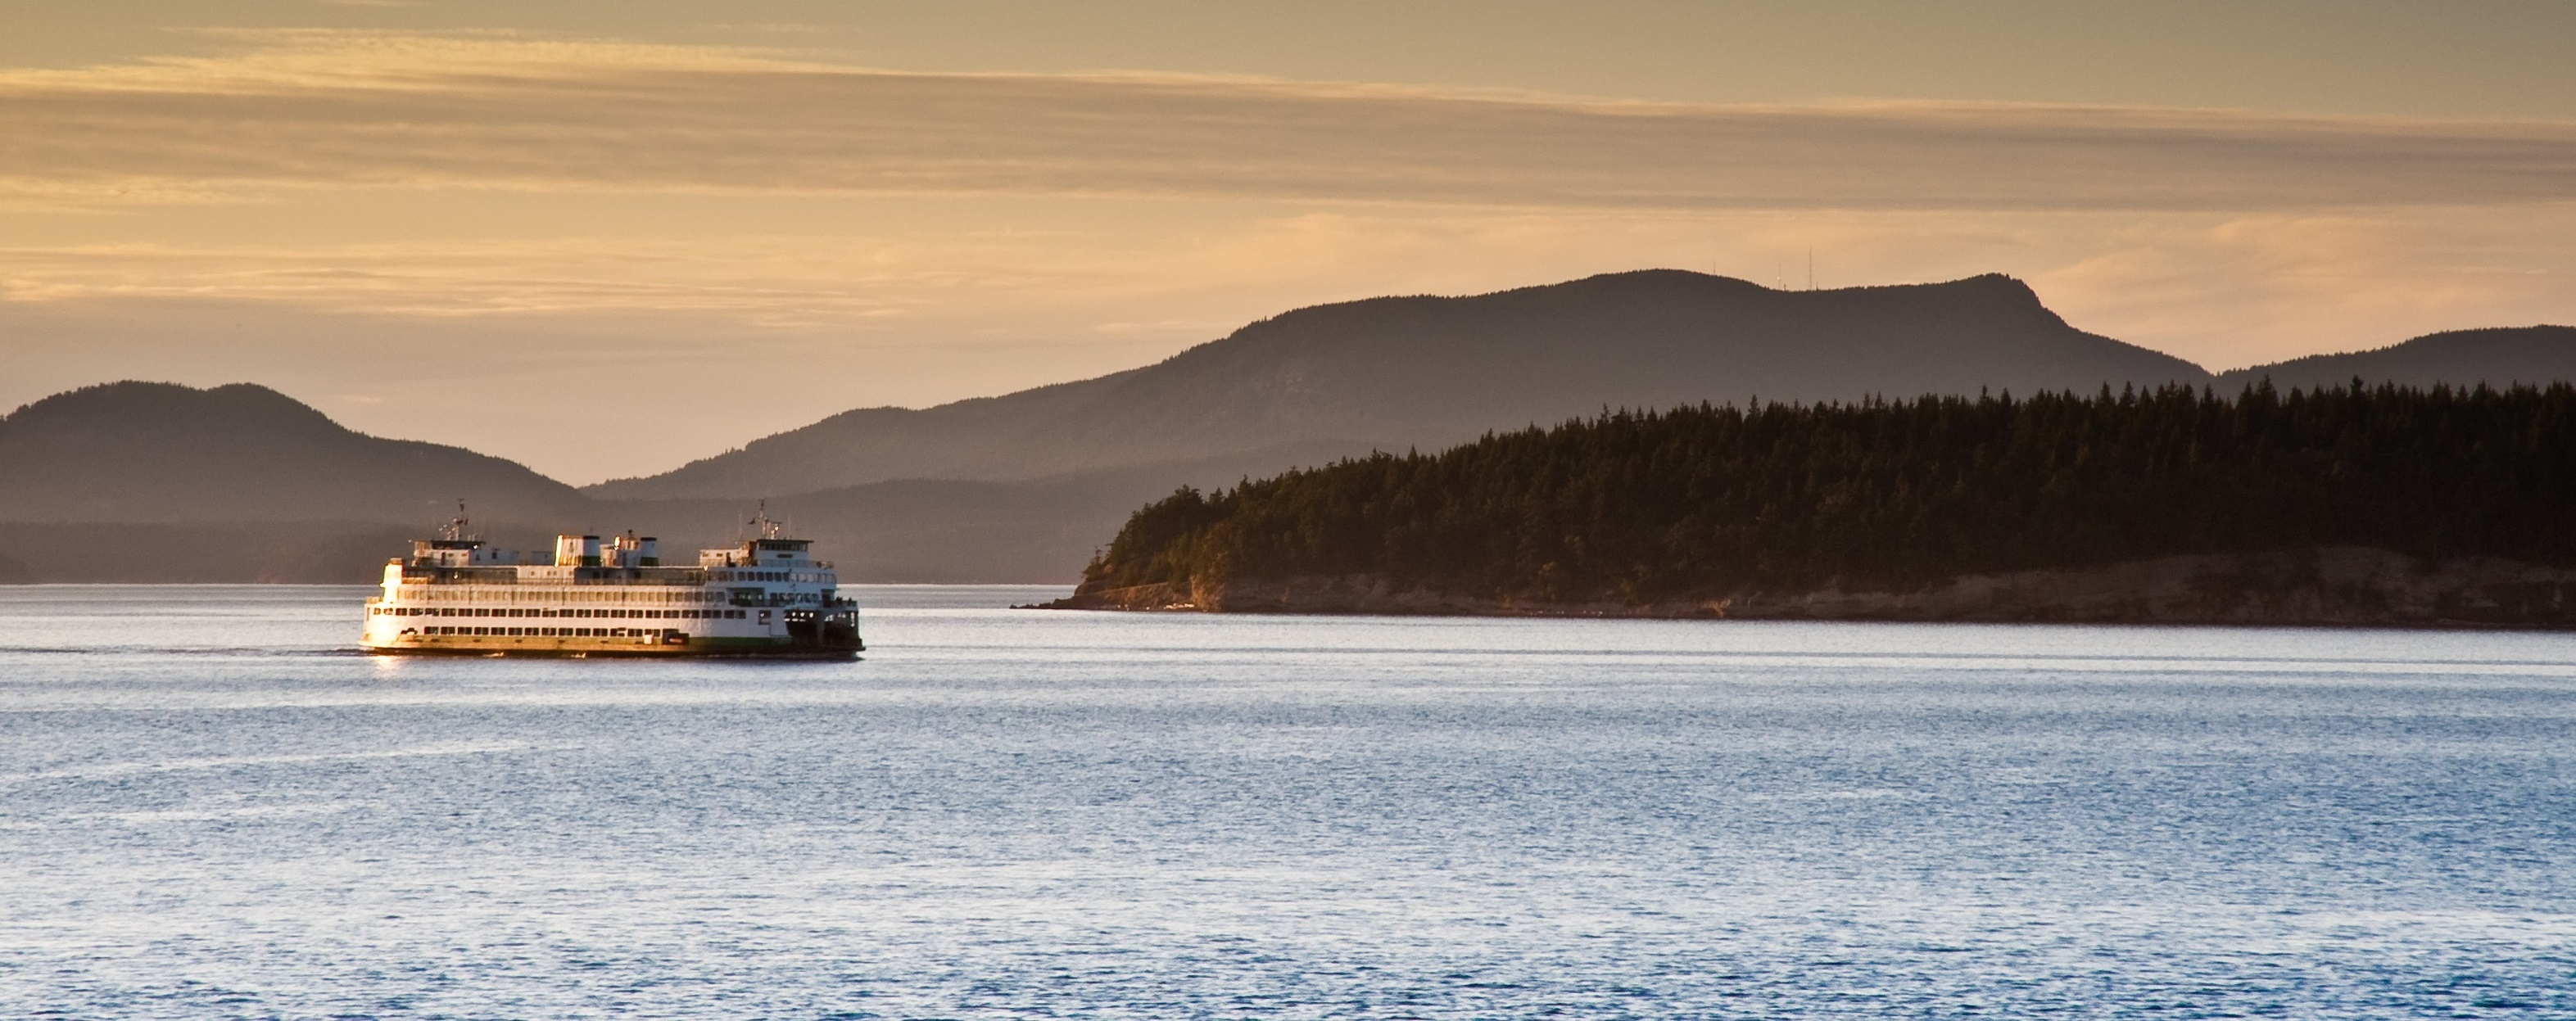 Ferry boat in Puget Sound at sunset